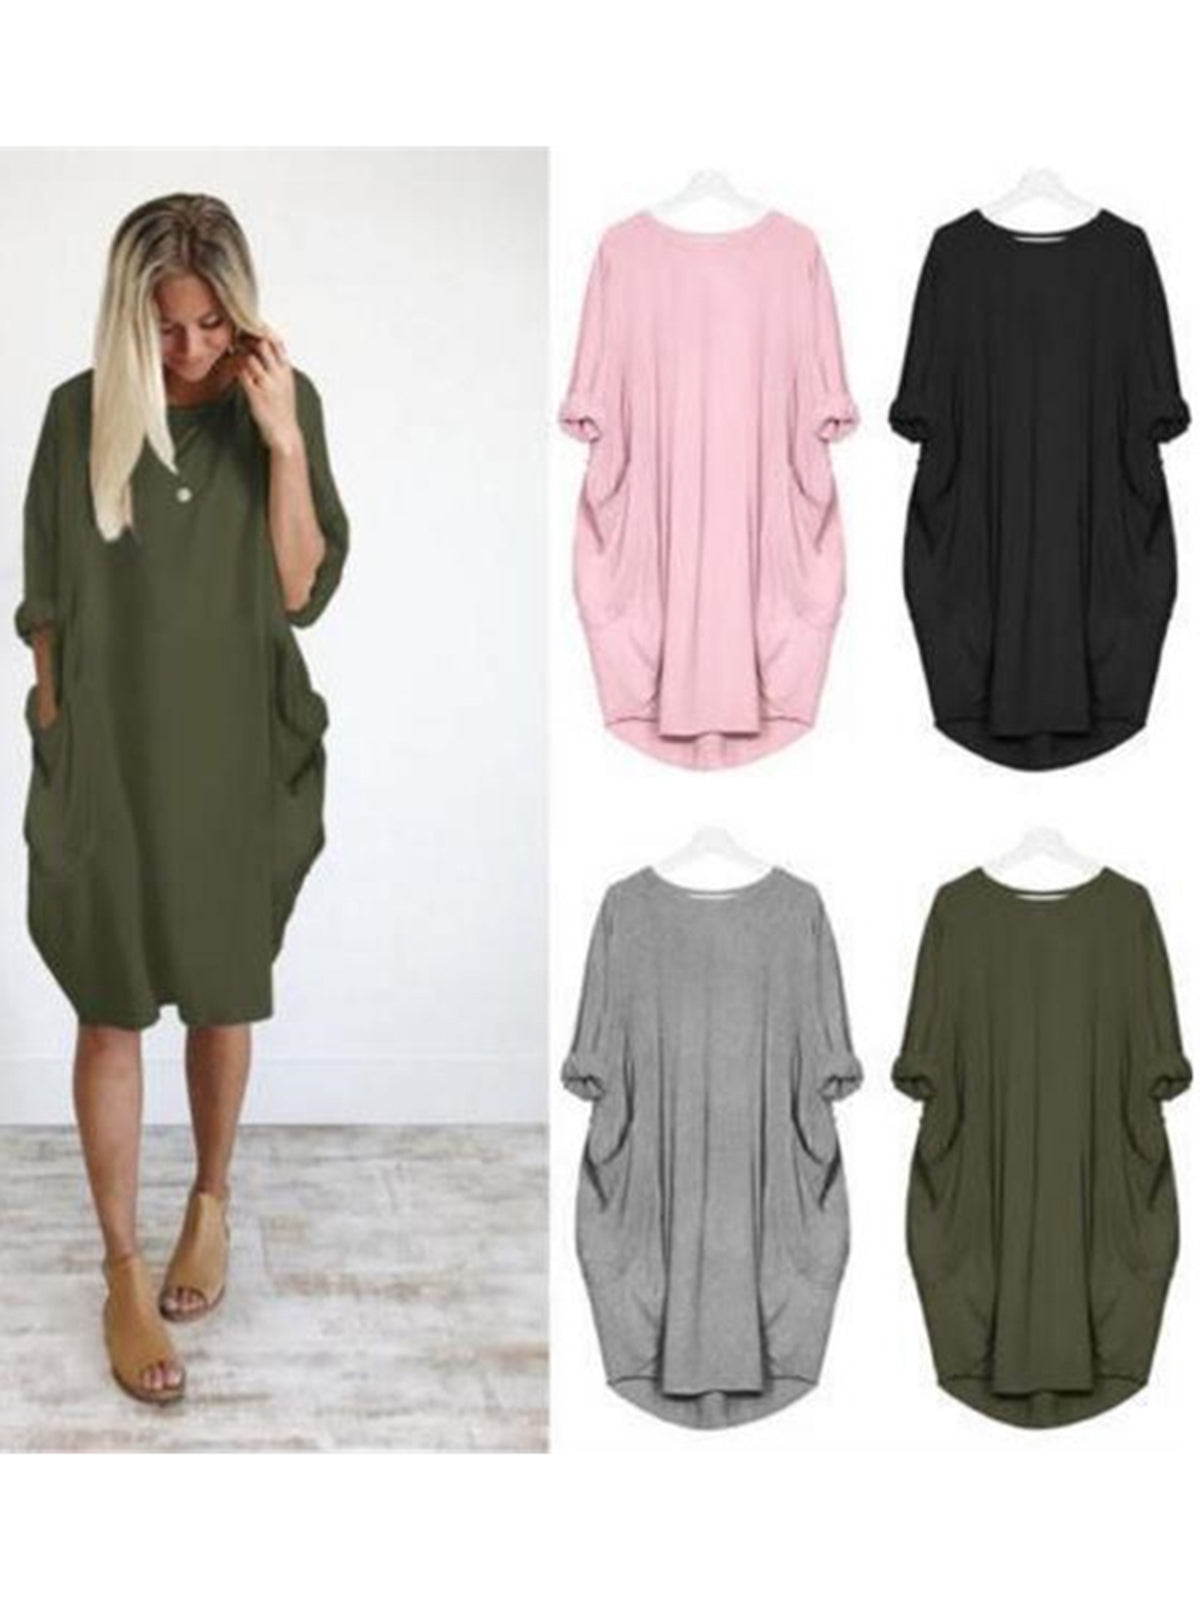 049a1129e101 ... Women Plus Size Solid Crew Neck Solid Batwing Sleeve Cocoon Pockets  Shift Dresses ...